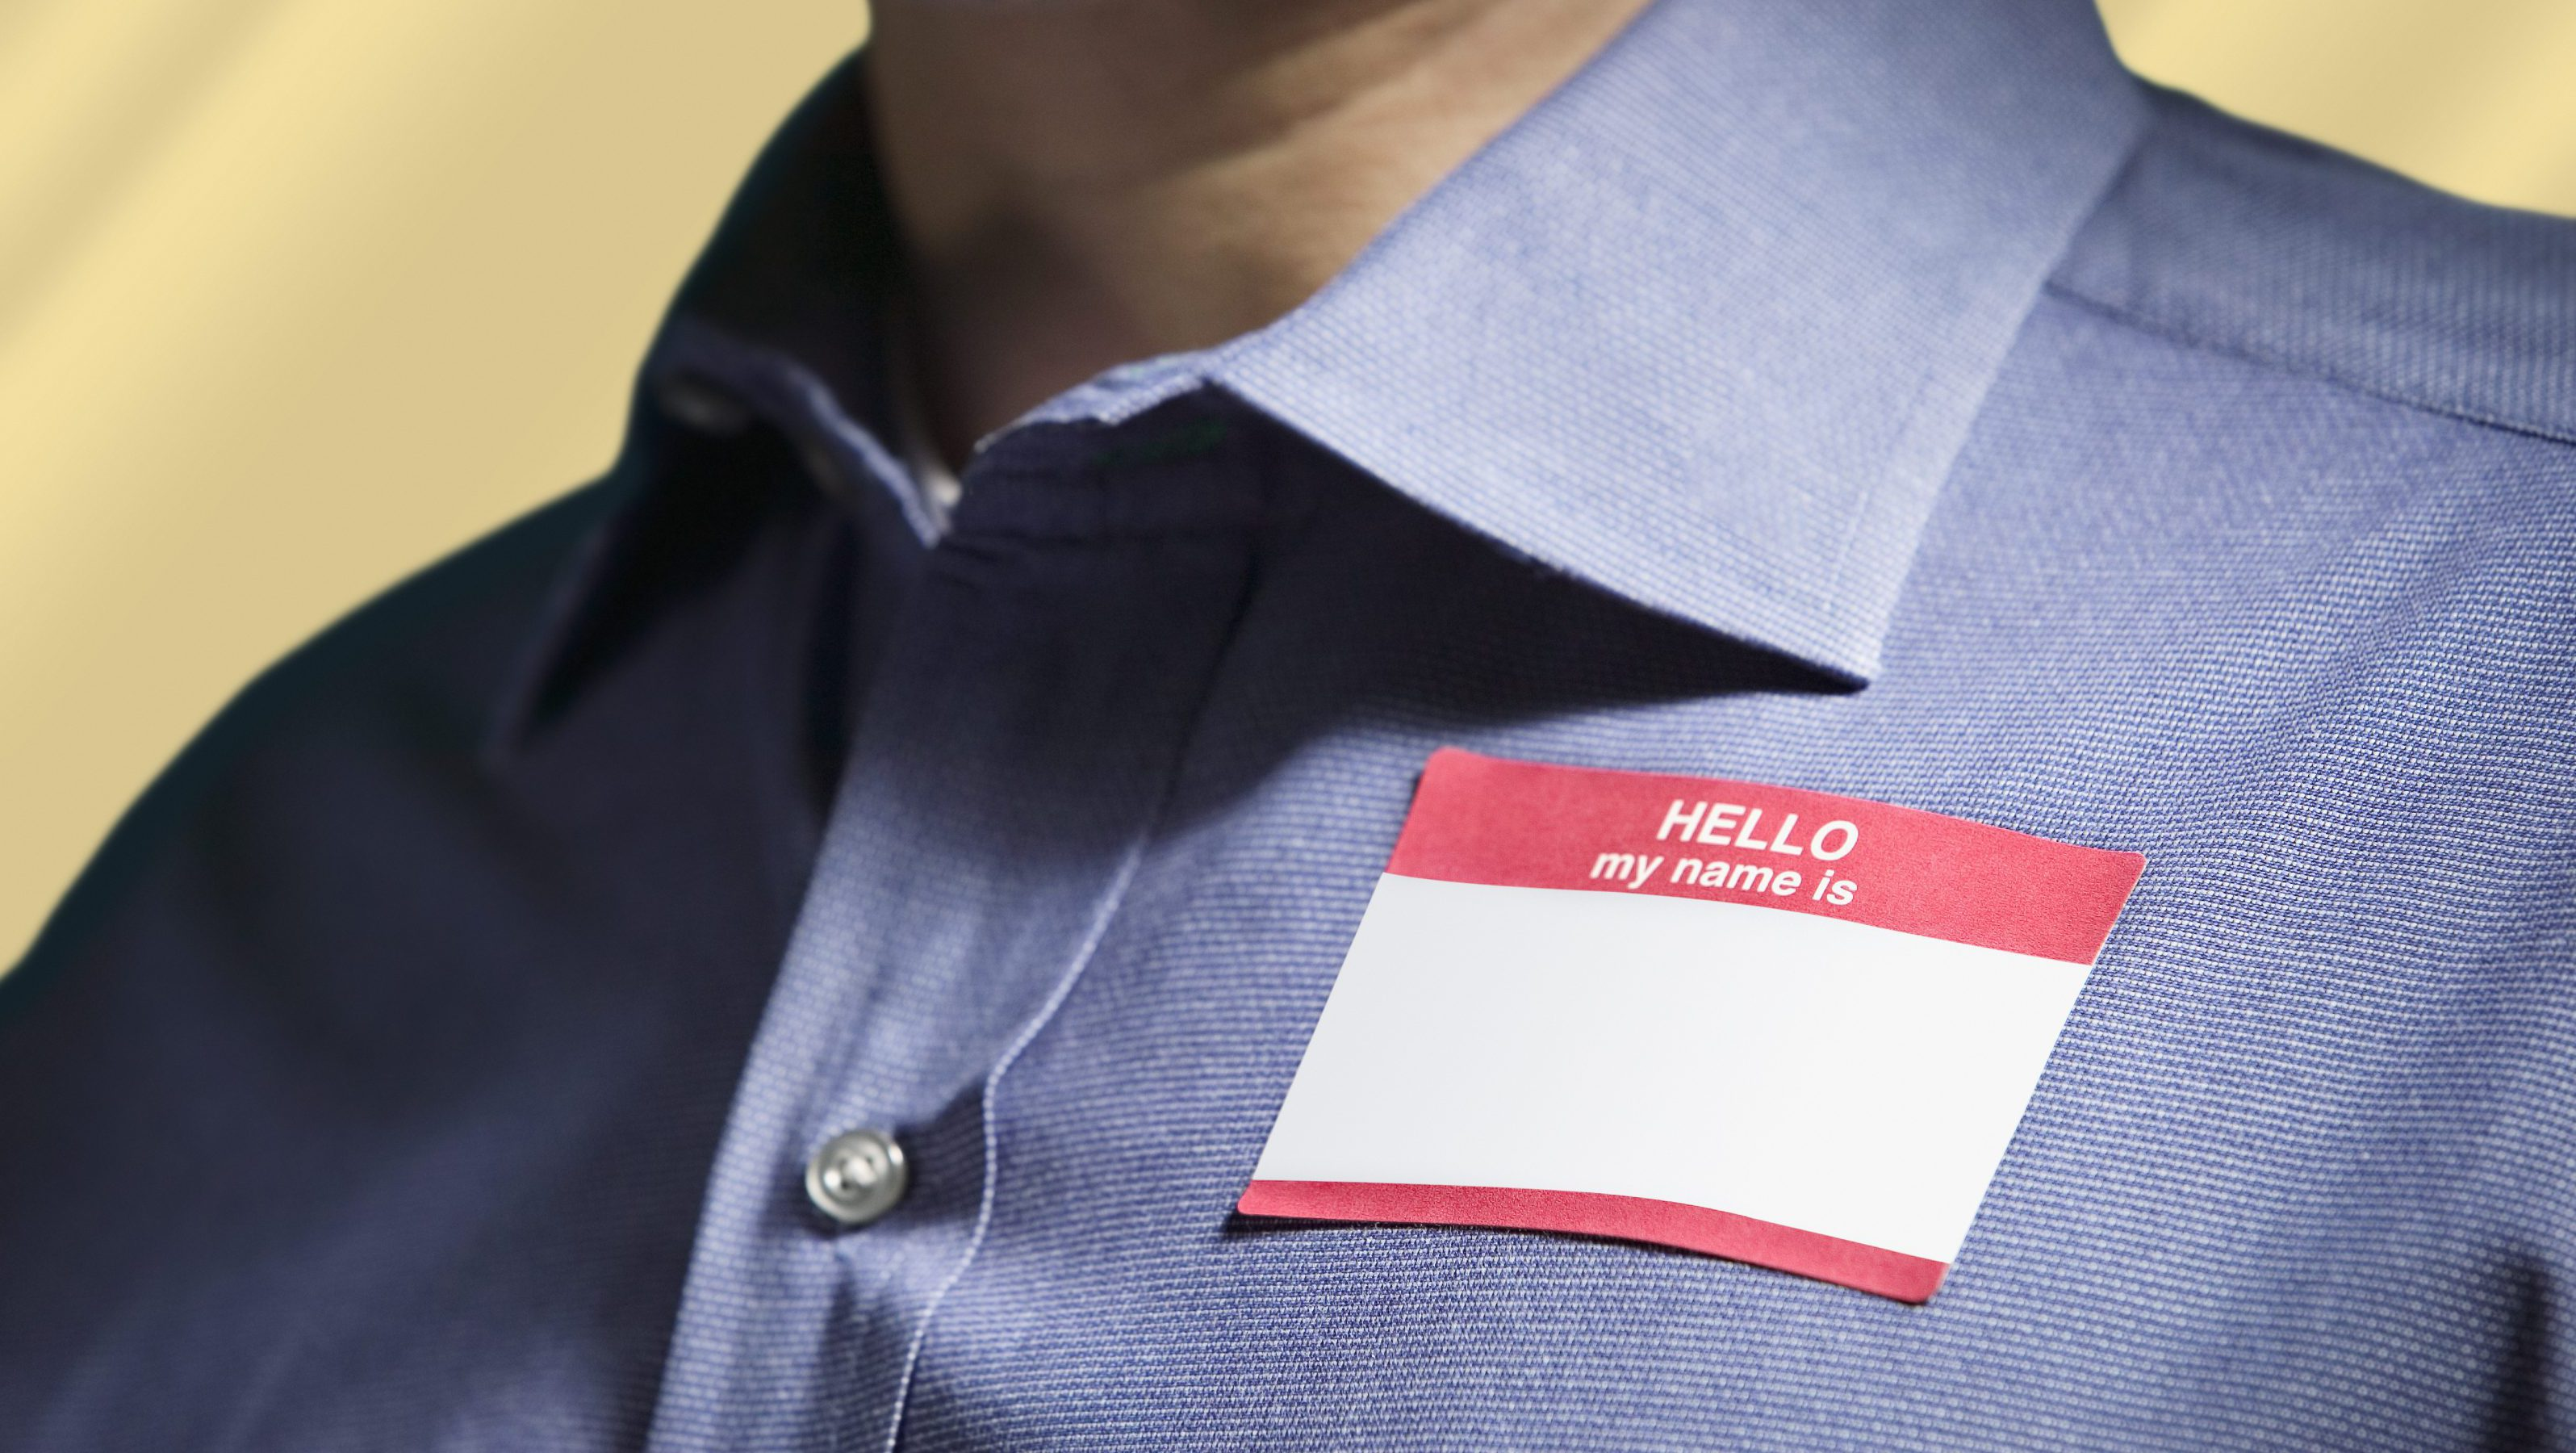 A Hello My Name is name tag